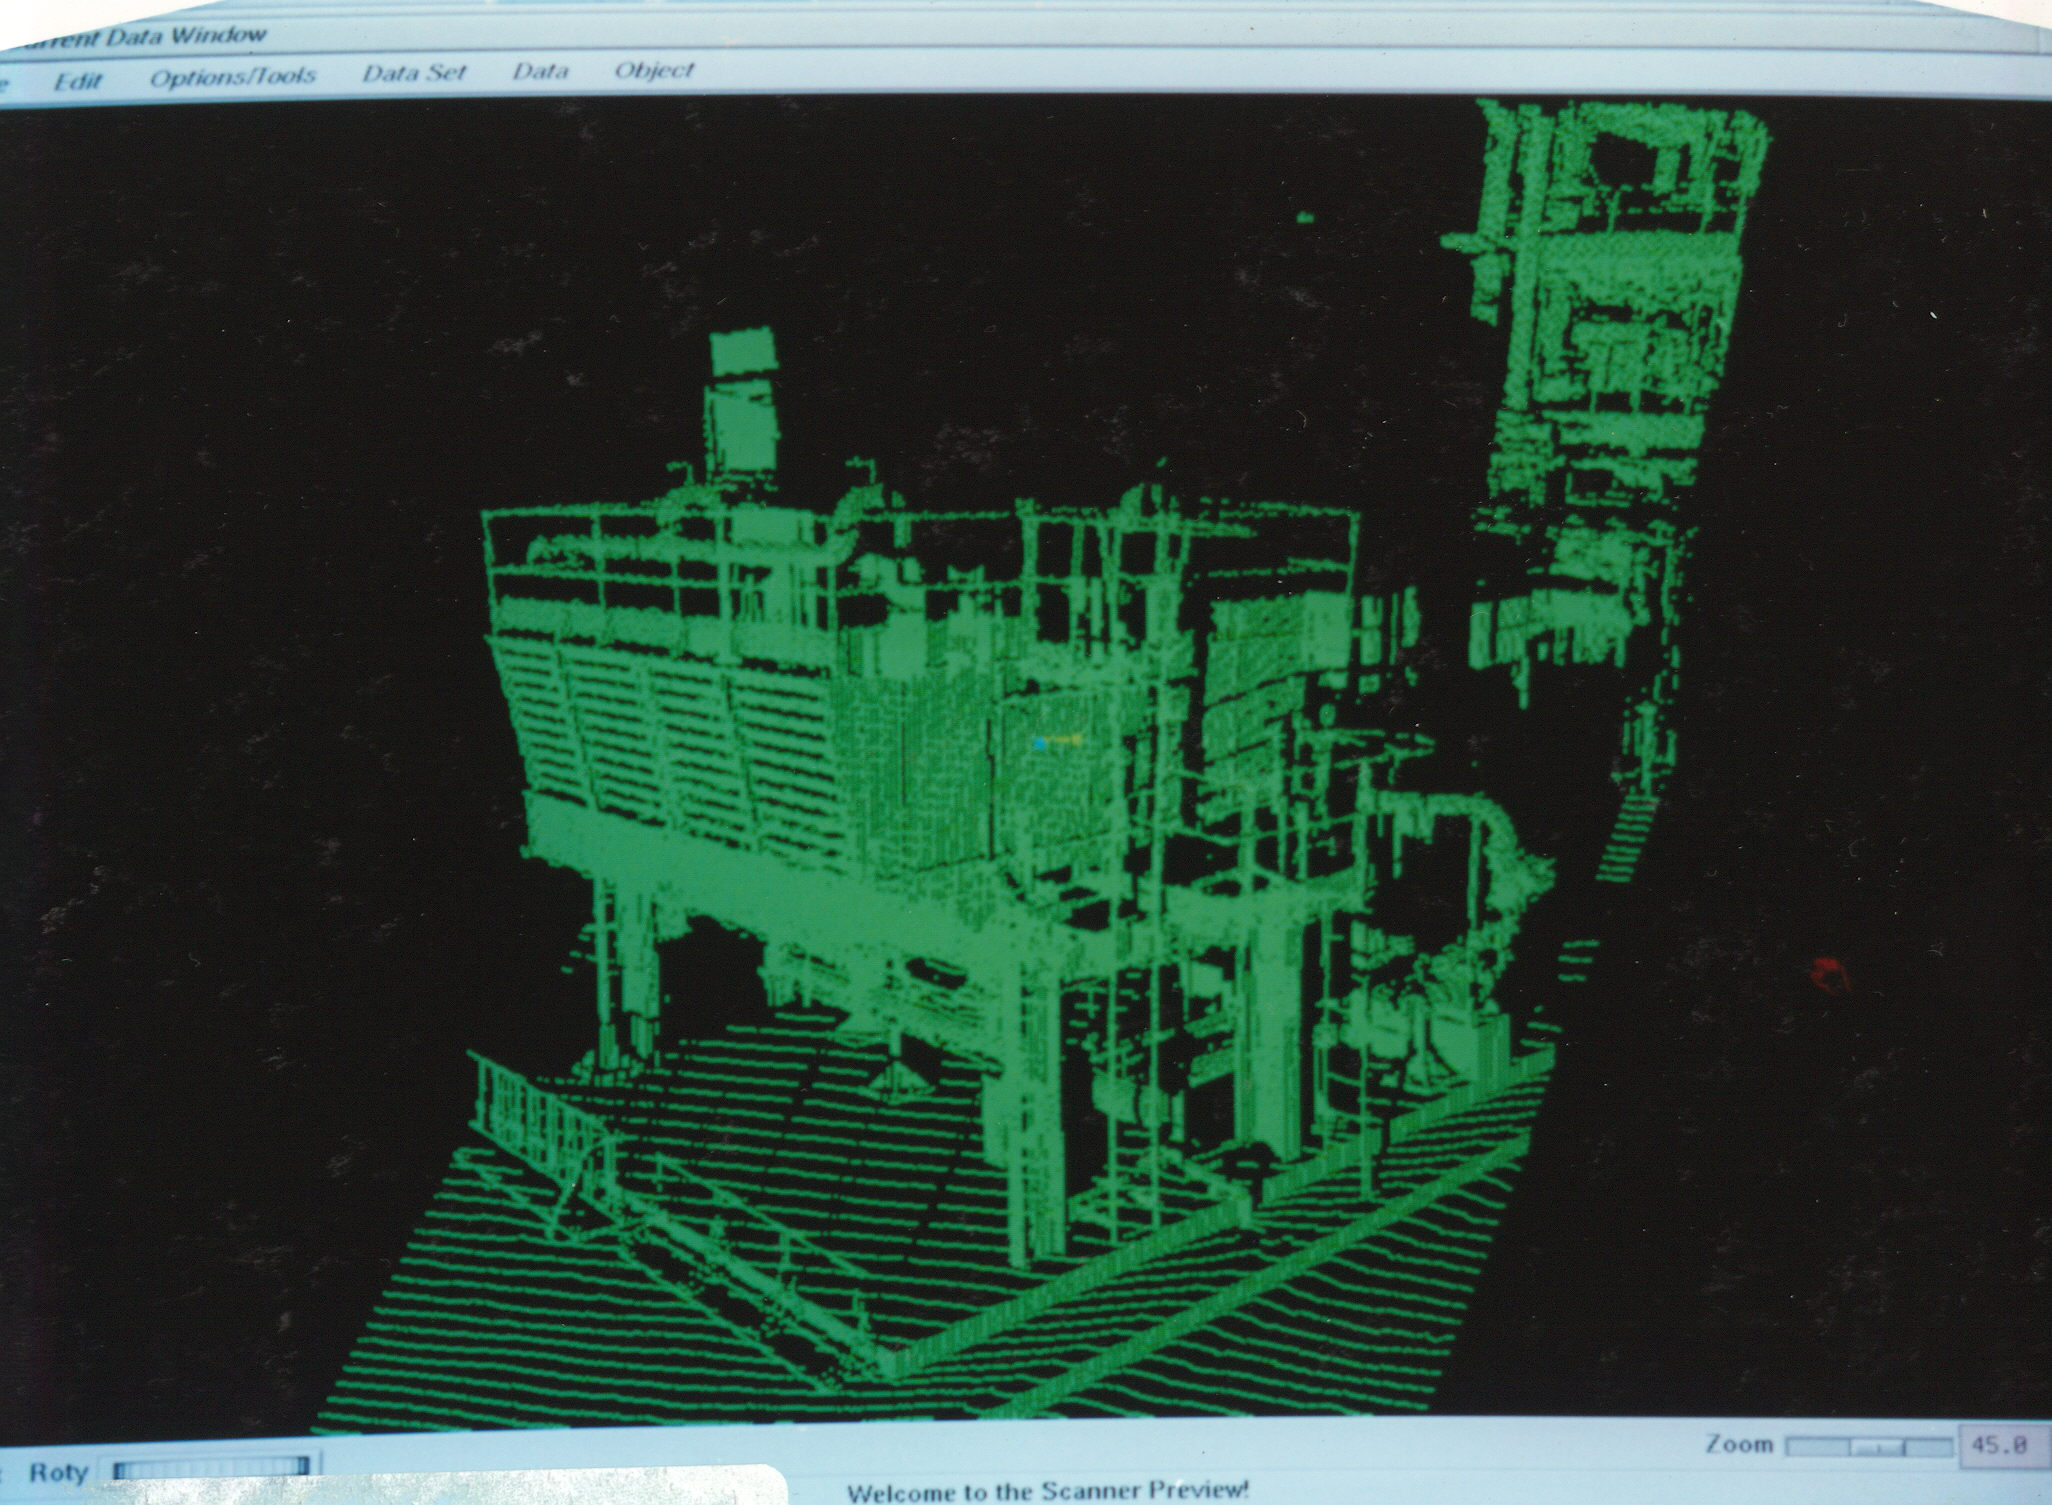 Demo laser scan of equipment and structure at Chevron's Richmond, California, refinery.